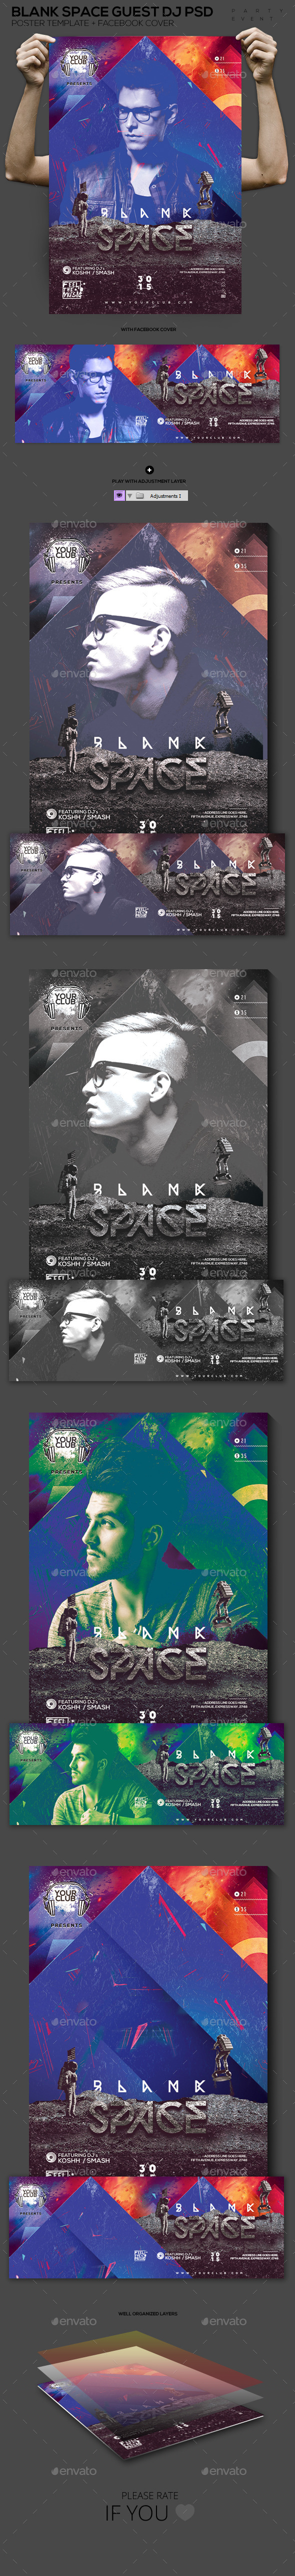 GraphicRiver Blank Space Guest DJ PSD Template 11949847